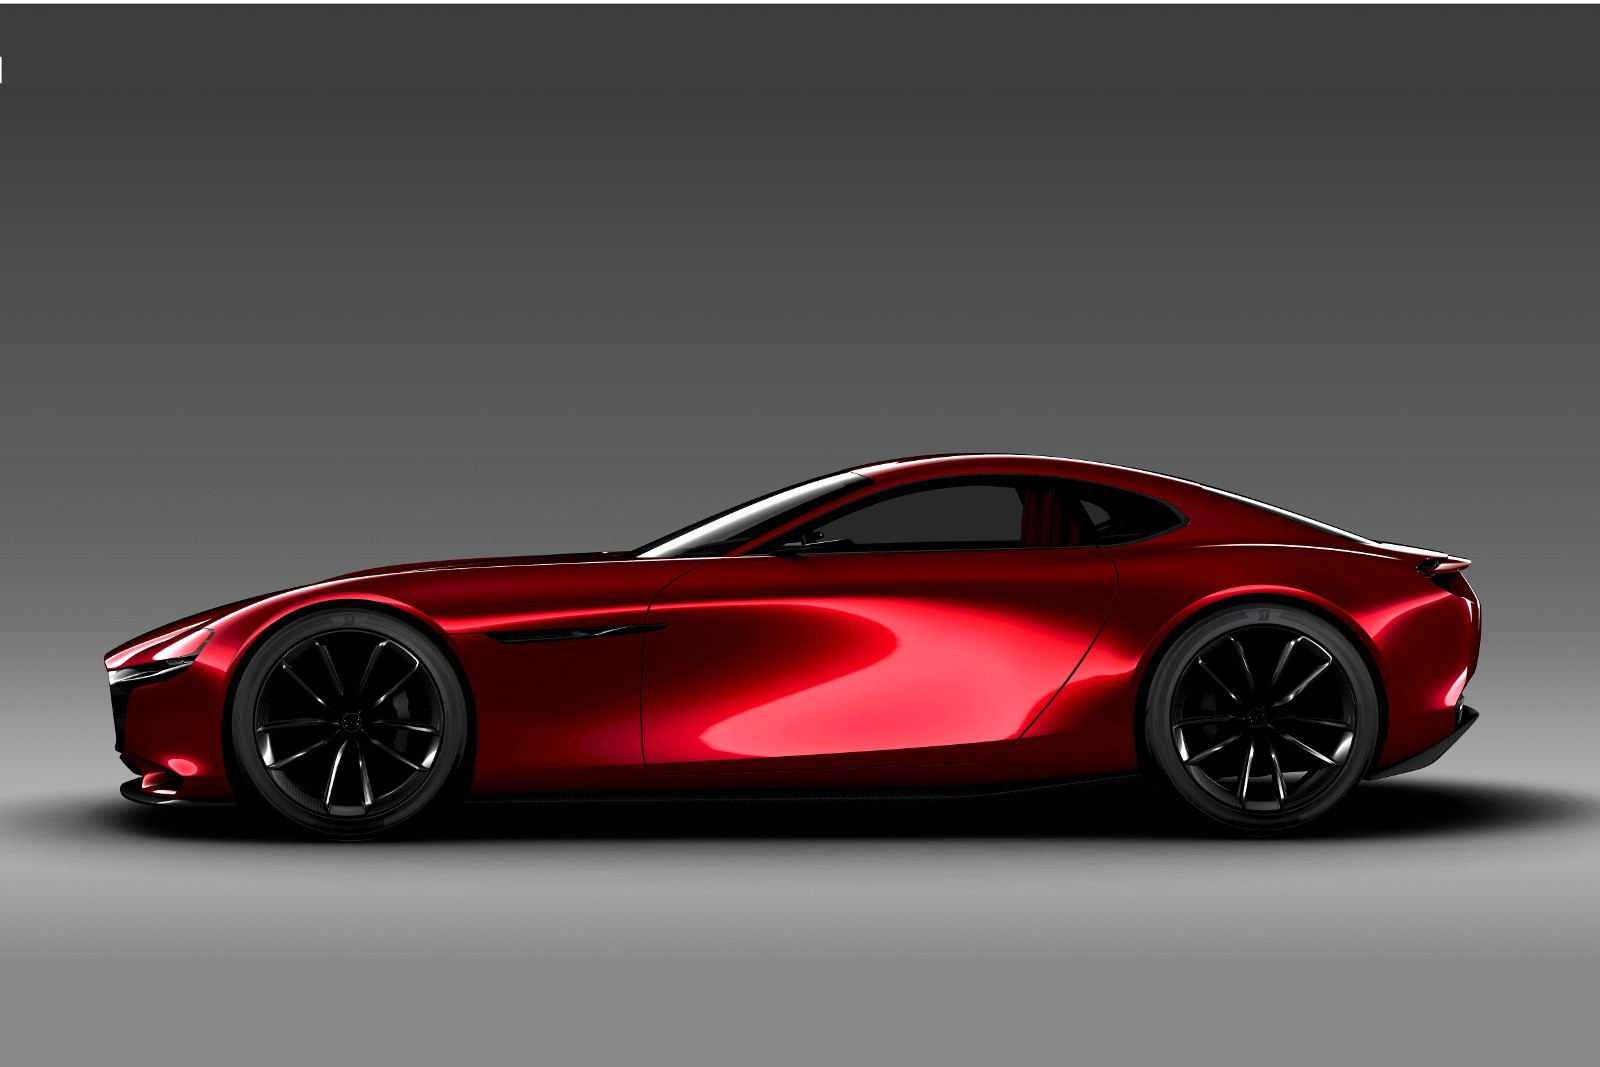 Mazda Rx 7 2017 - Top Car Updates 2019-2020 by